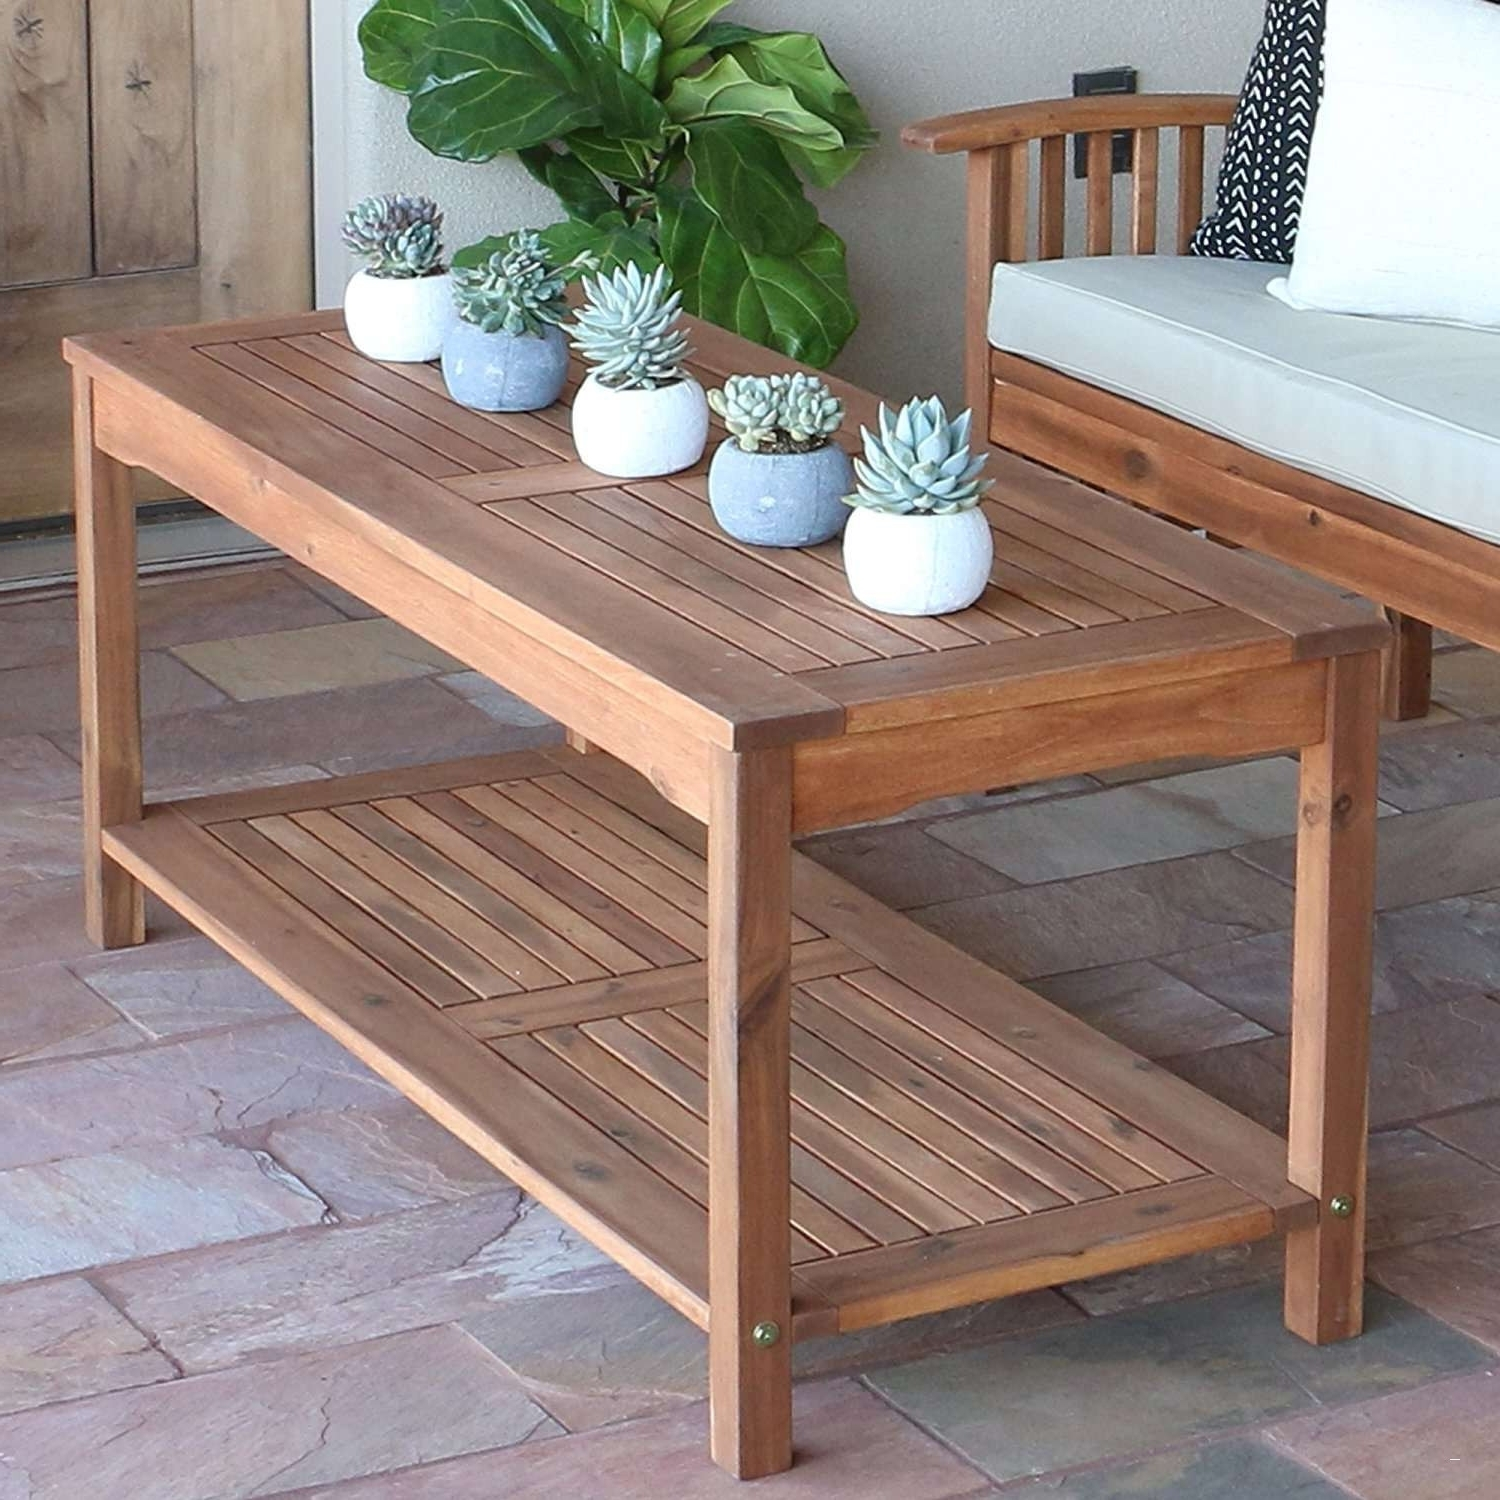 Patio Umbrella Stand Side Tables Within 2018 Umbrella Stand Side Table Home Design Planning With Charming Patio (View 19 of 20)